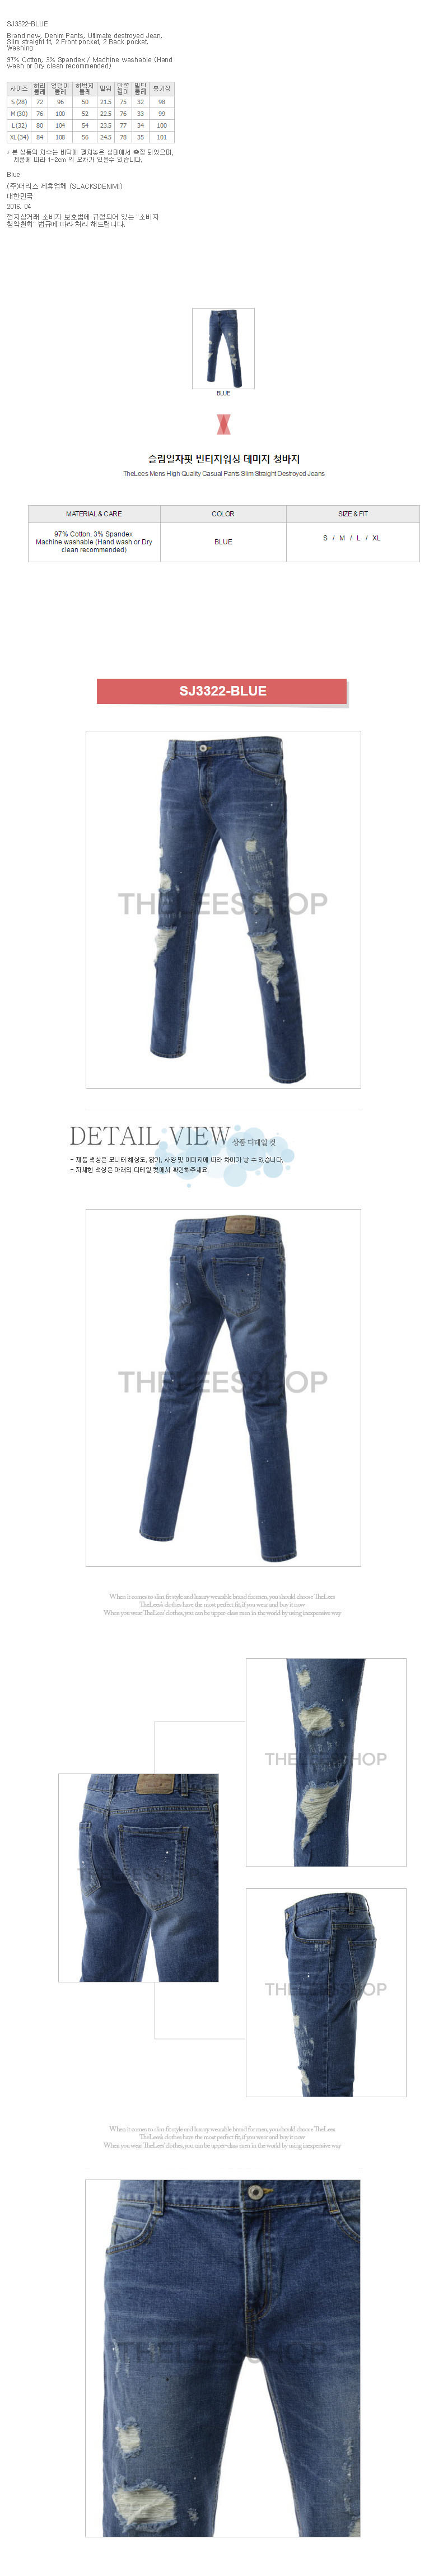 [ KOOLLOOK ] [KoolLook] Slim Fit Vintage Washed Distressed Straight Jeans SJ3322